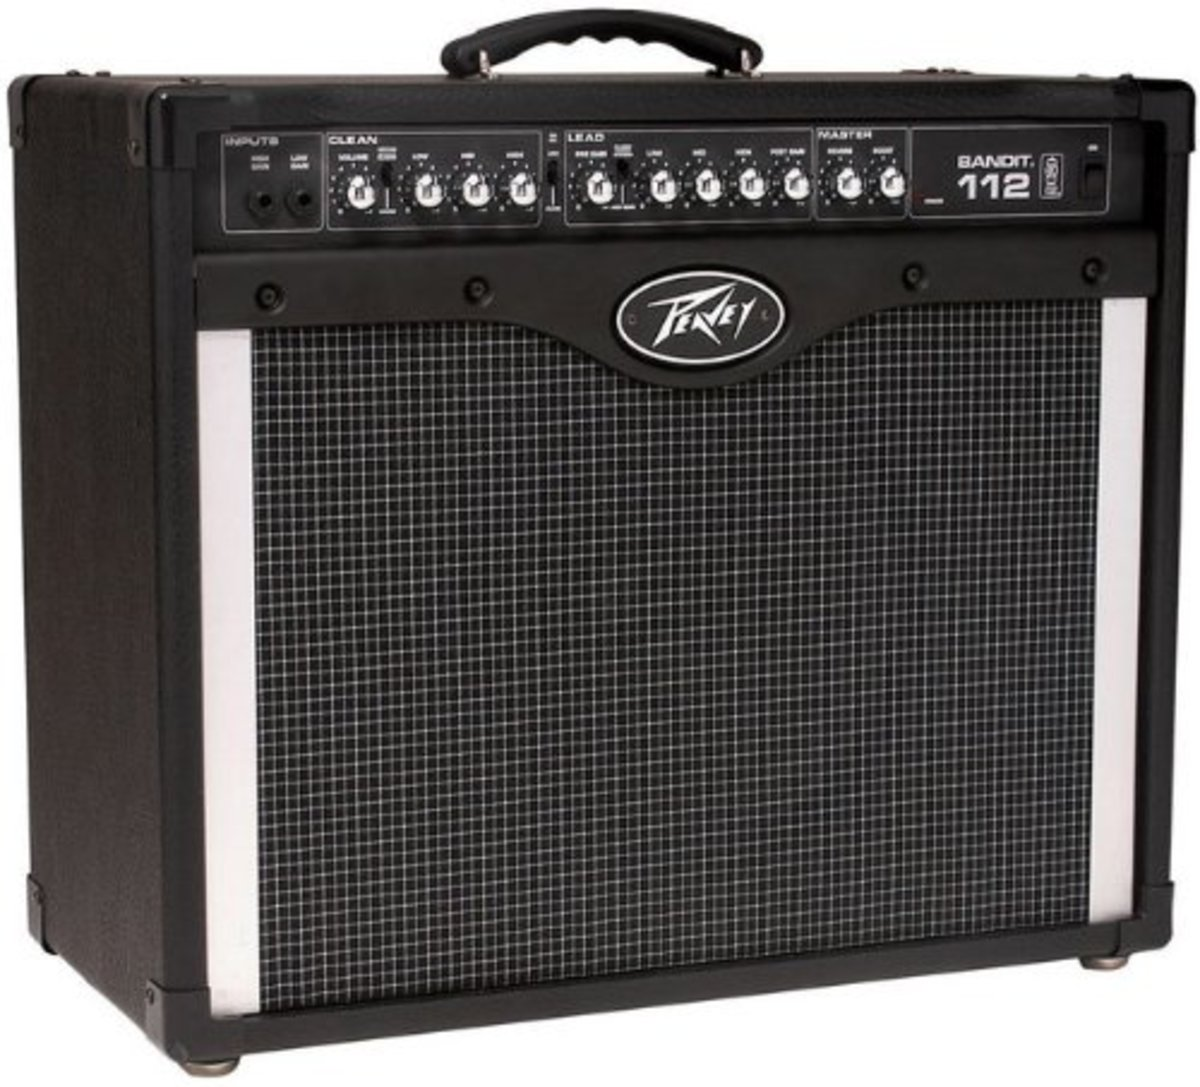 The Peavey Bandit is a classic, and among the best guitar amps out there for the money.